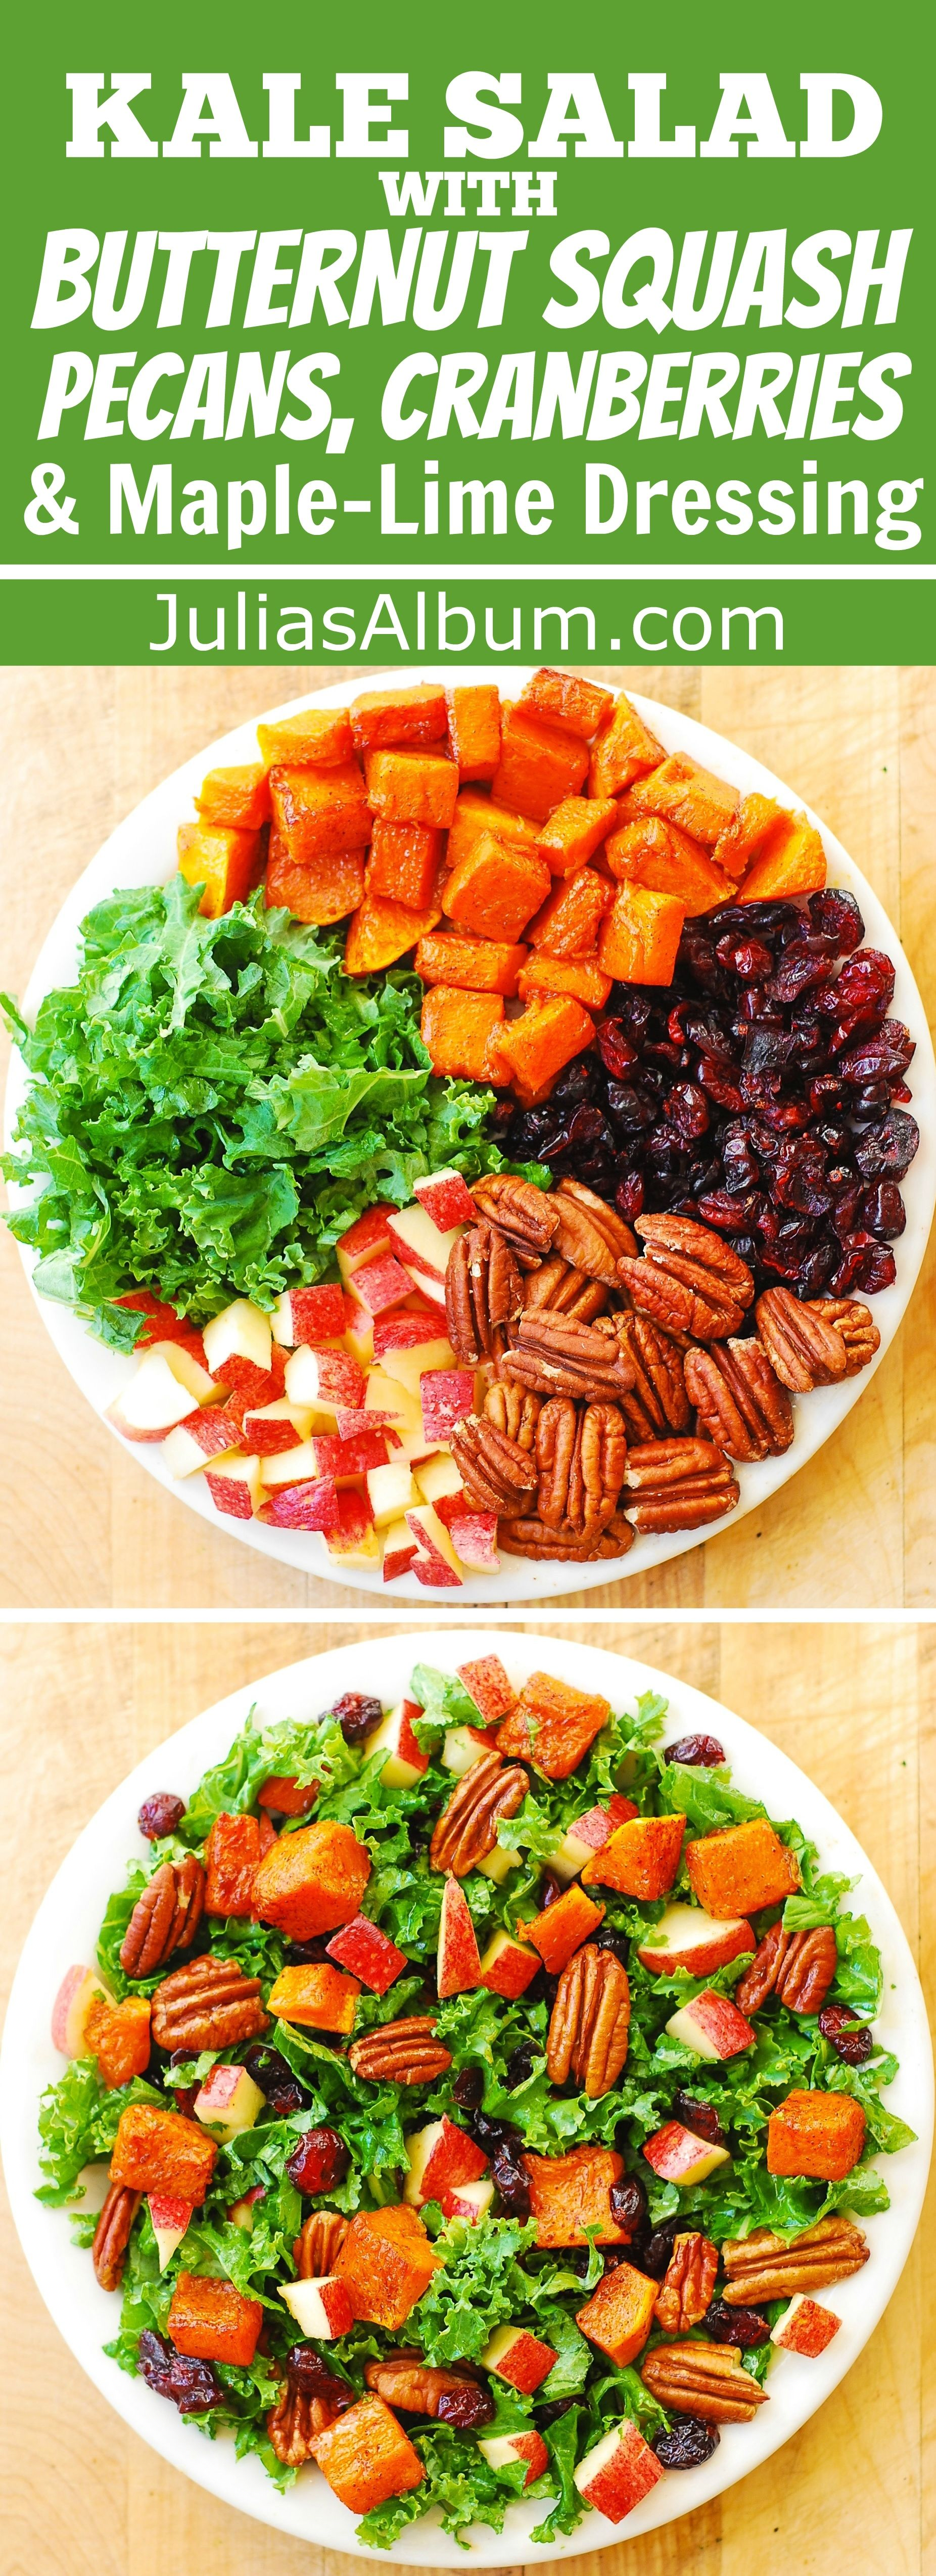 Healthy recipe: Butternut Squash, Kale, Pecan, Cranberry, Apple Salad with Maple-Lime Dressing.